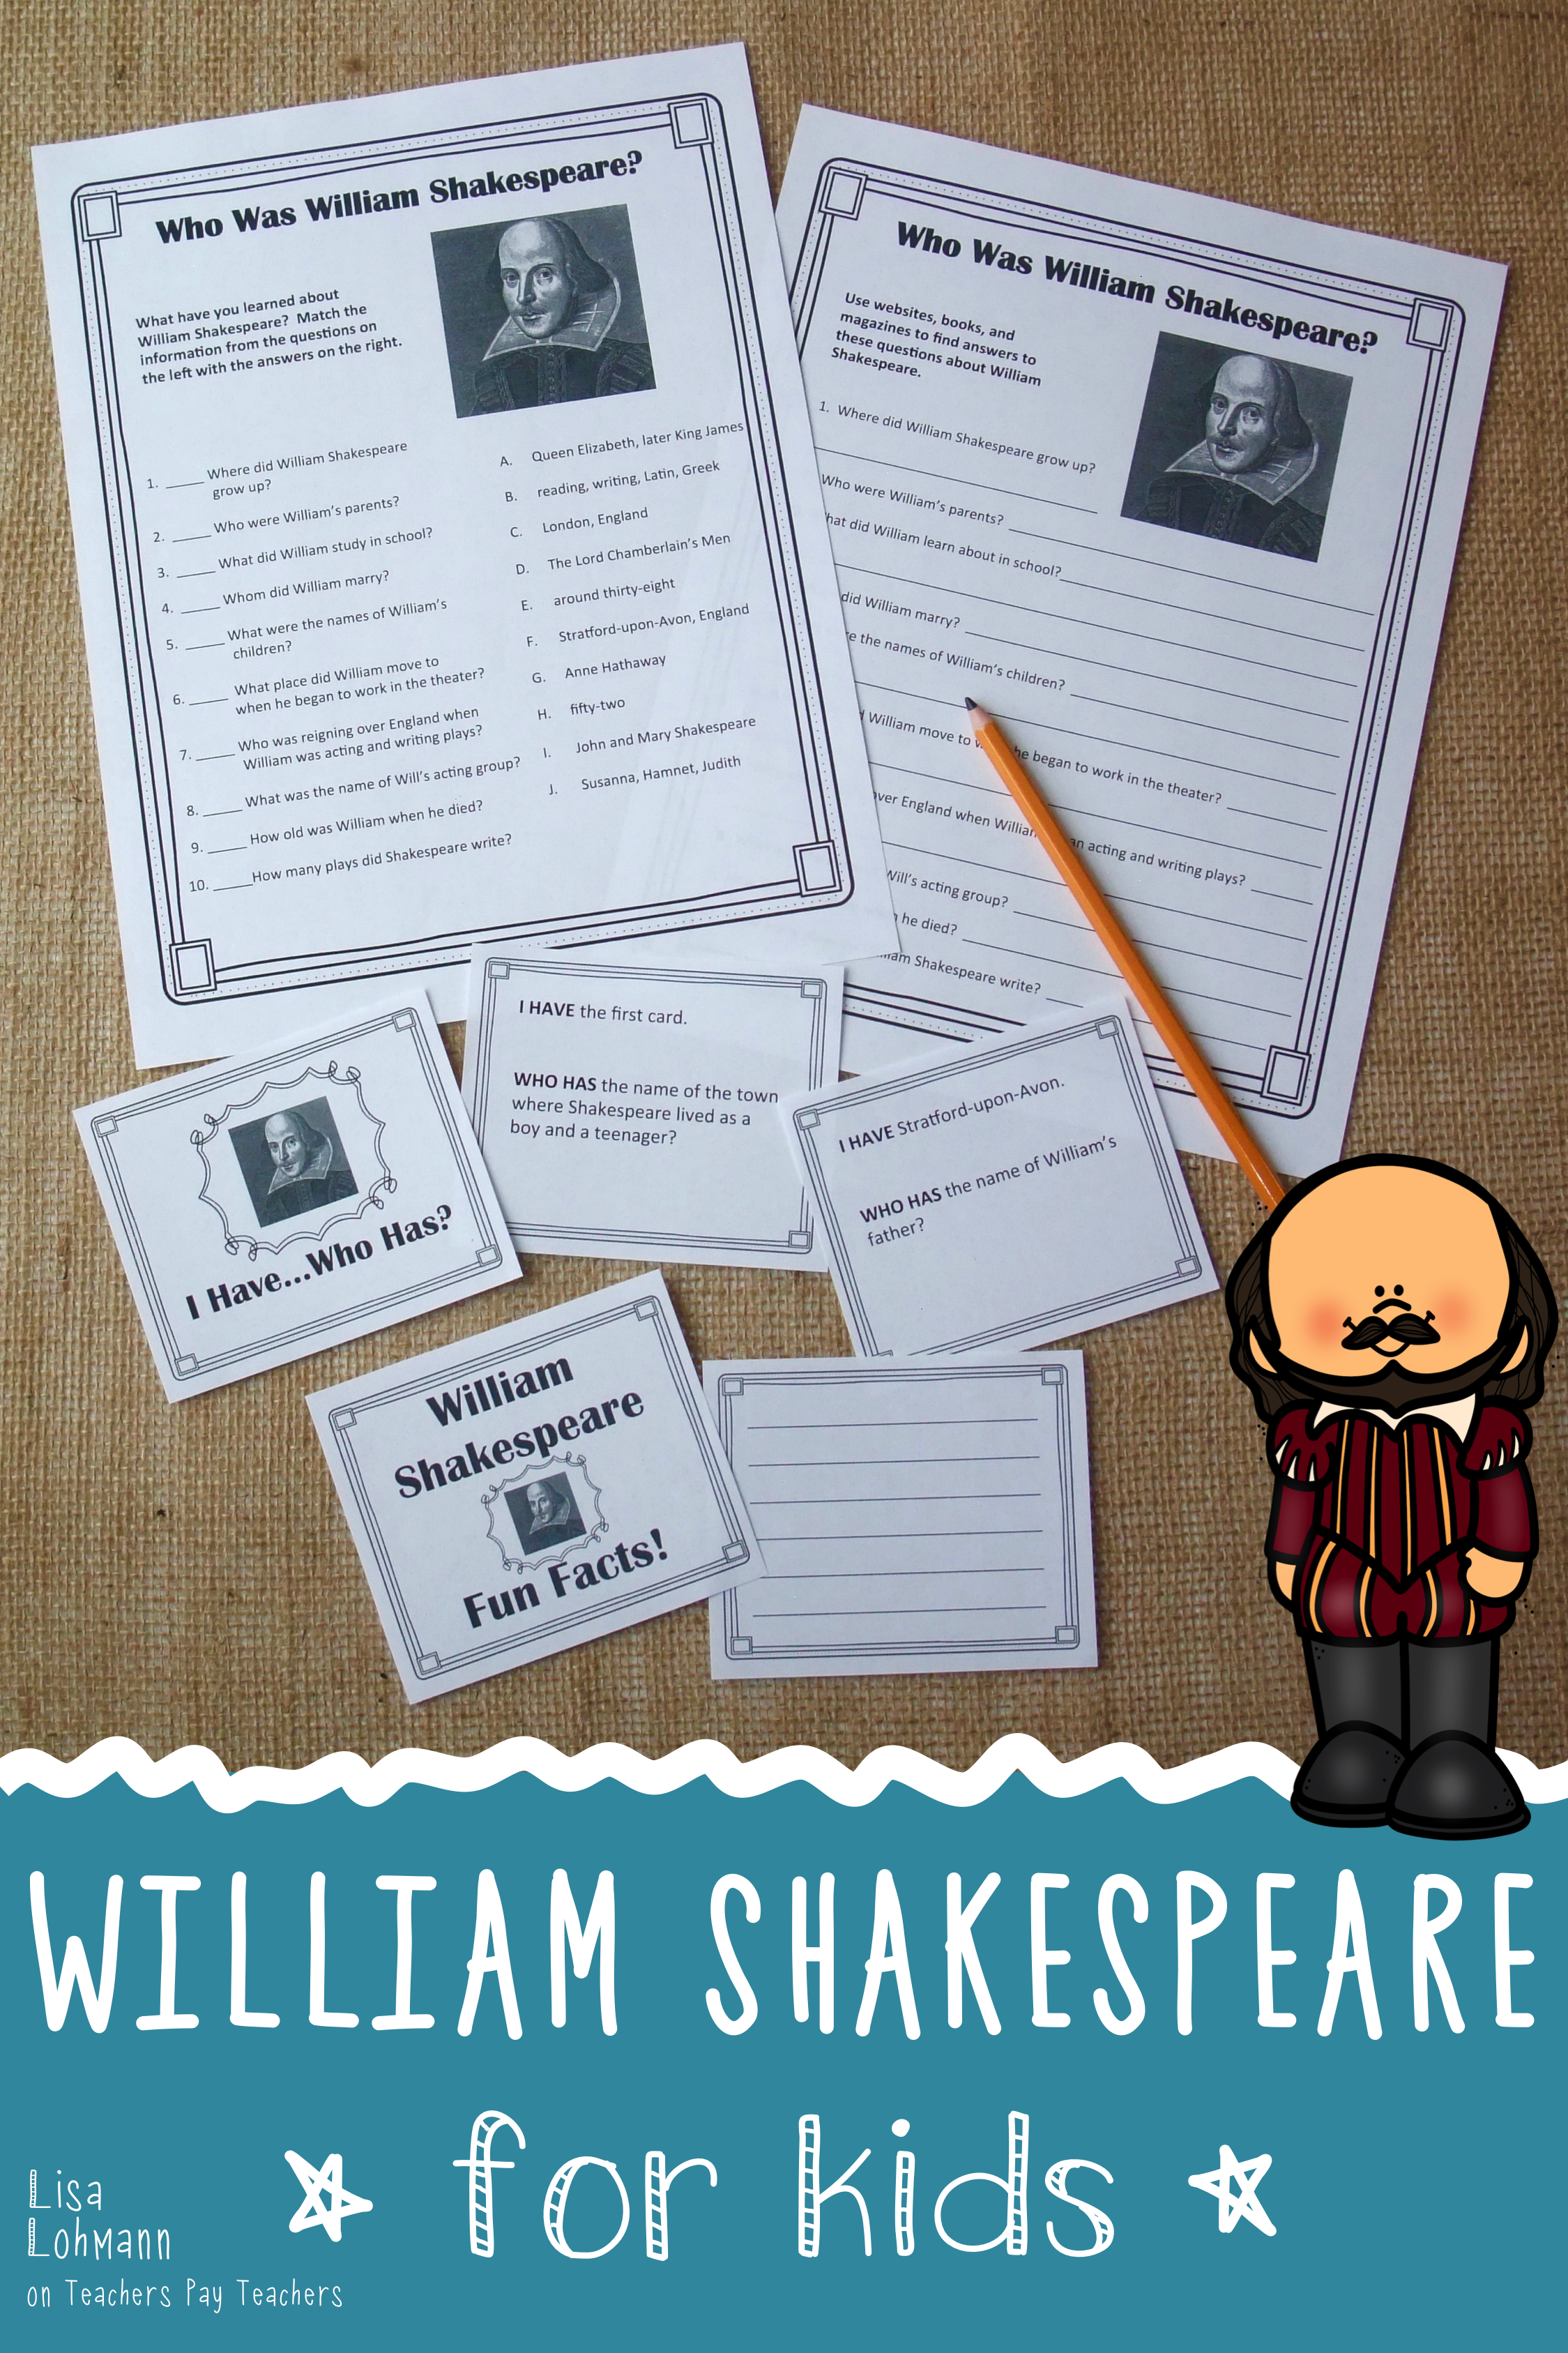 William Shakespeare Introduction For Kids With Images